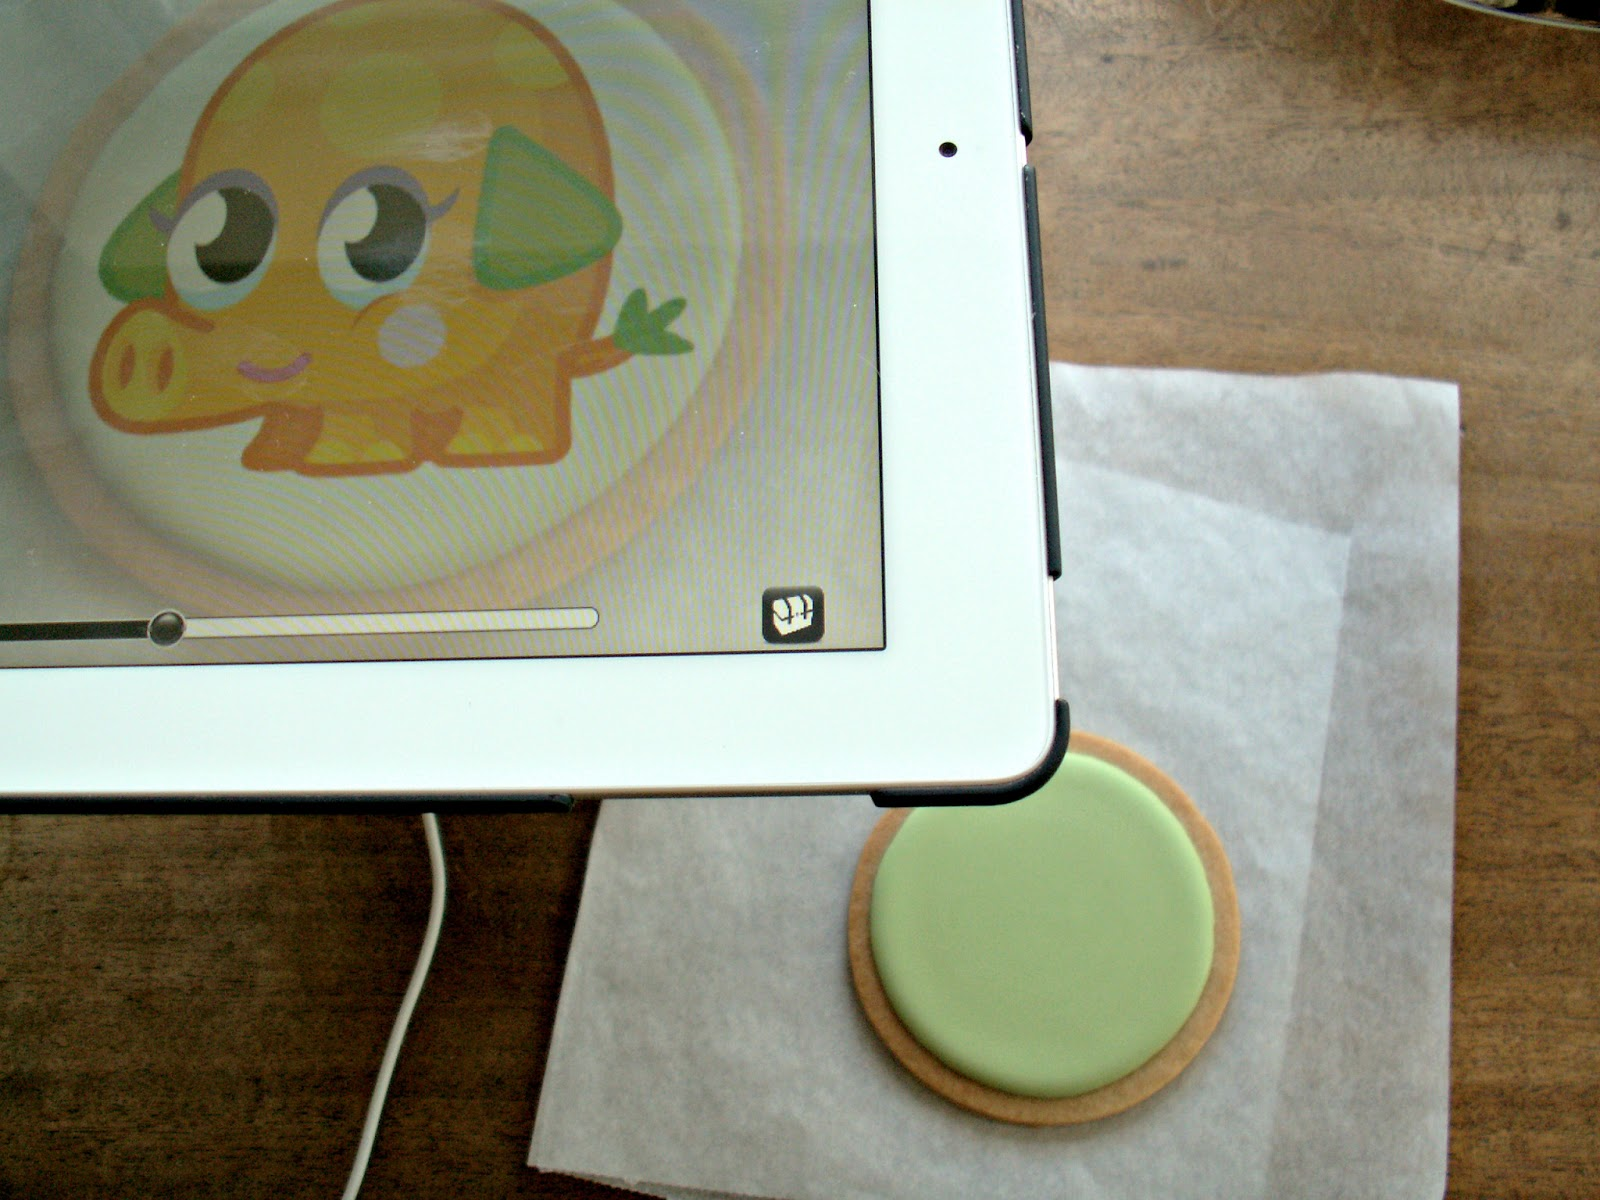 how to delete cookies on my ipad